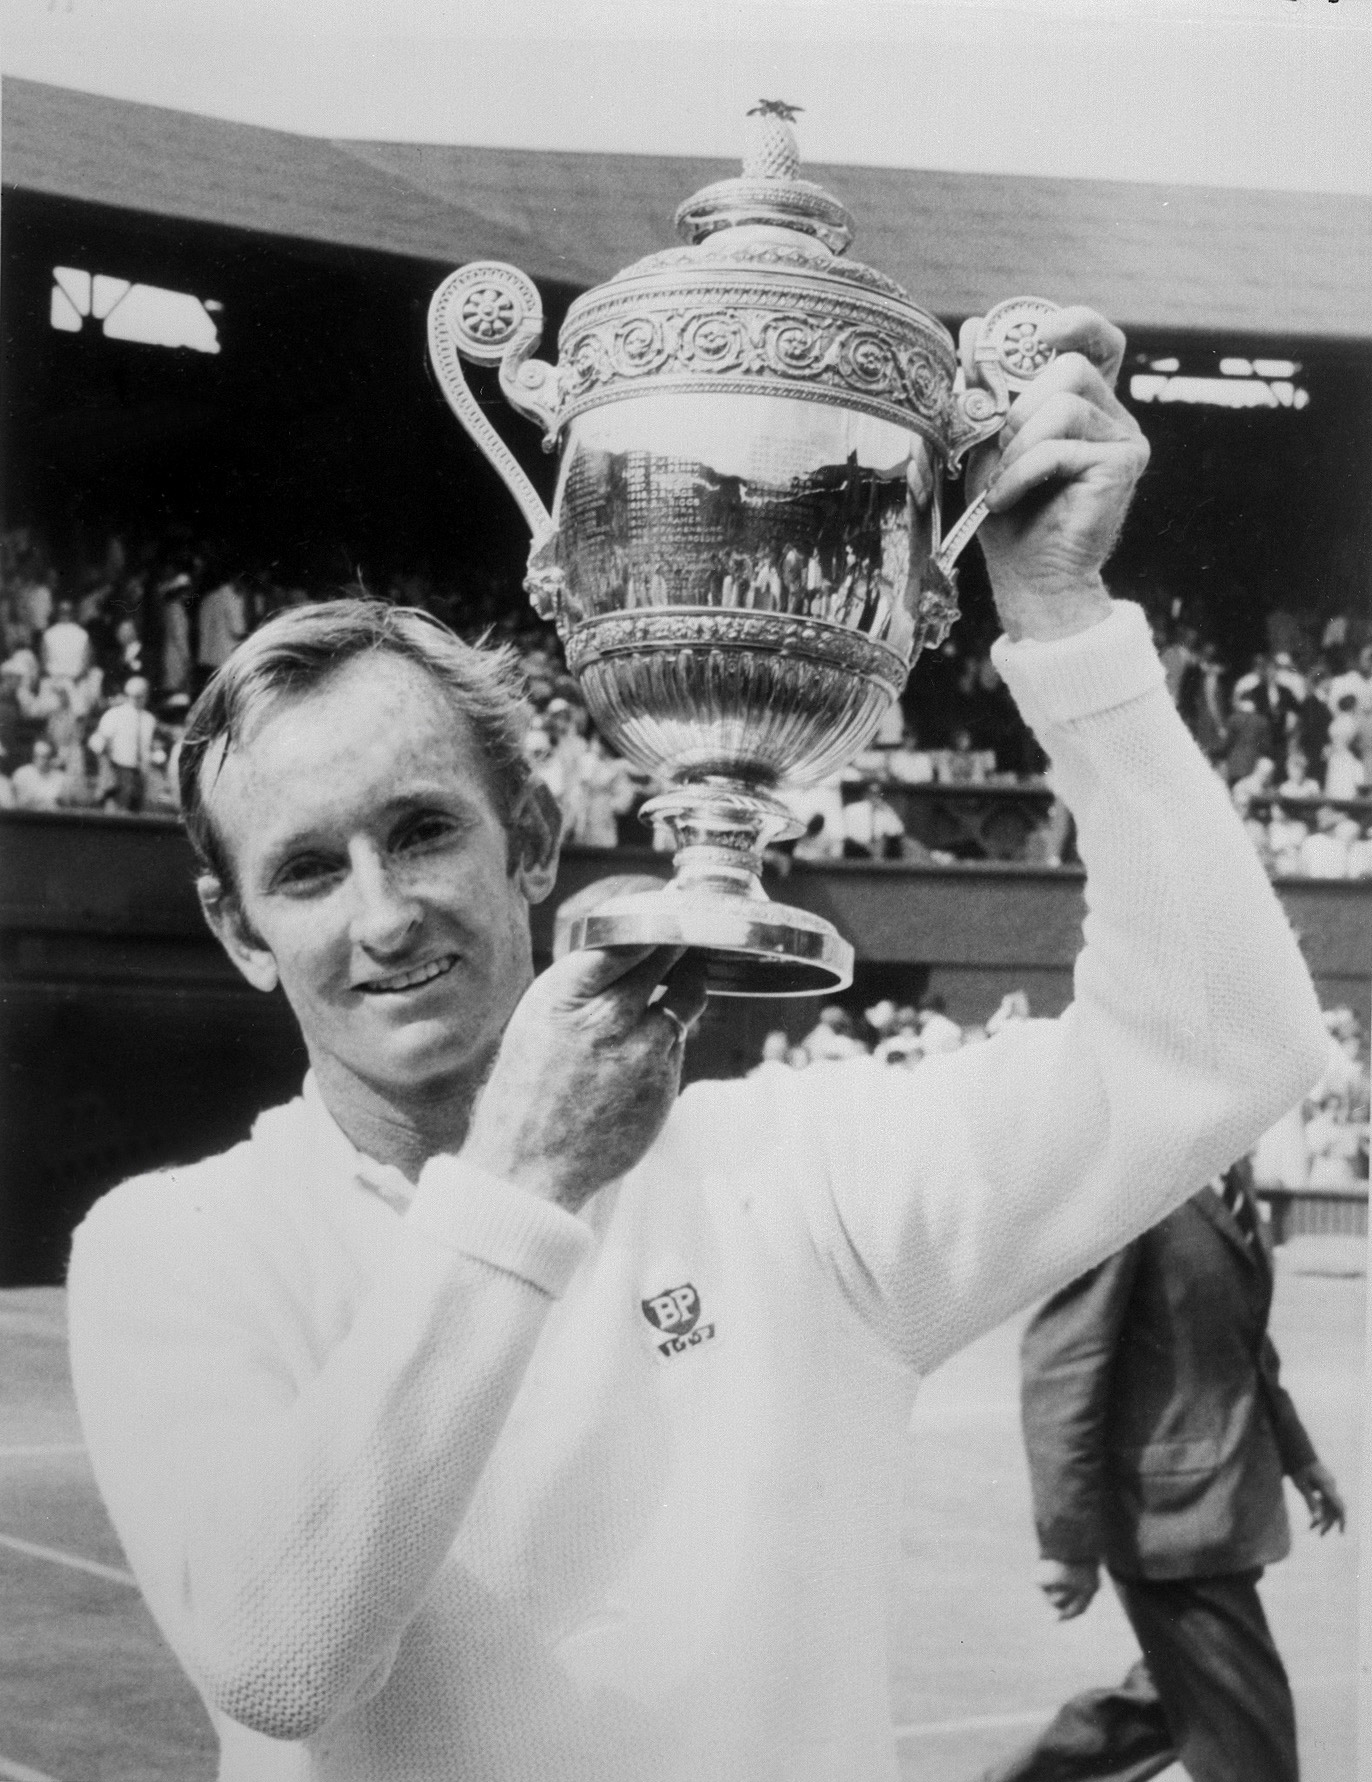 Australian tennis champion Rod Laver holds up the Wimbledon International tournament single men's trophy that he won, four-time consecutively, against his country fellow Tony Roche. Champion of the champions, Rod Laver is the one man to have won two grand slams, in 1962 and in 1969.